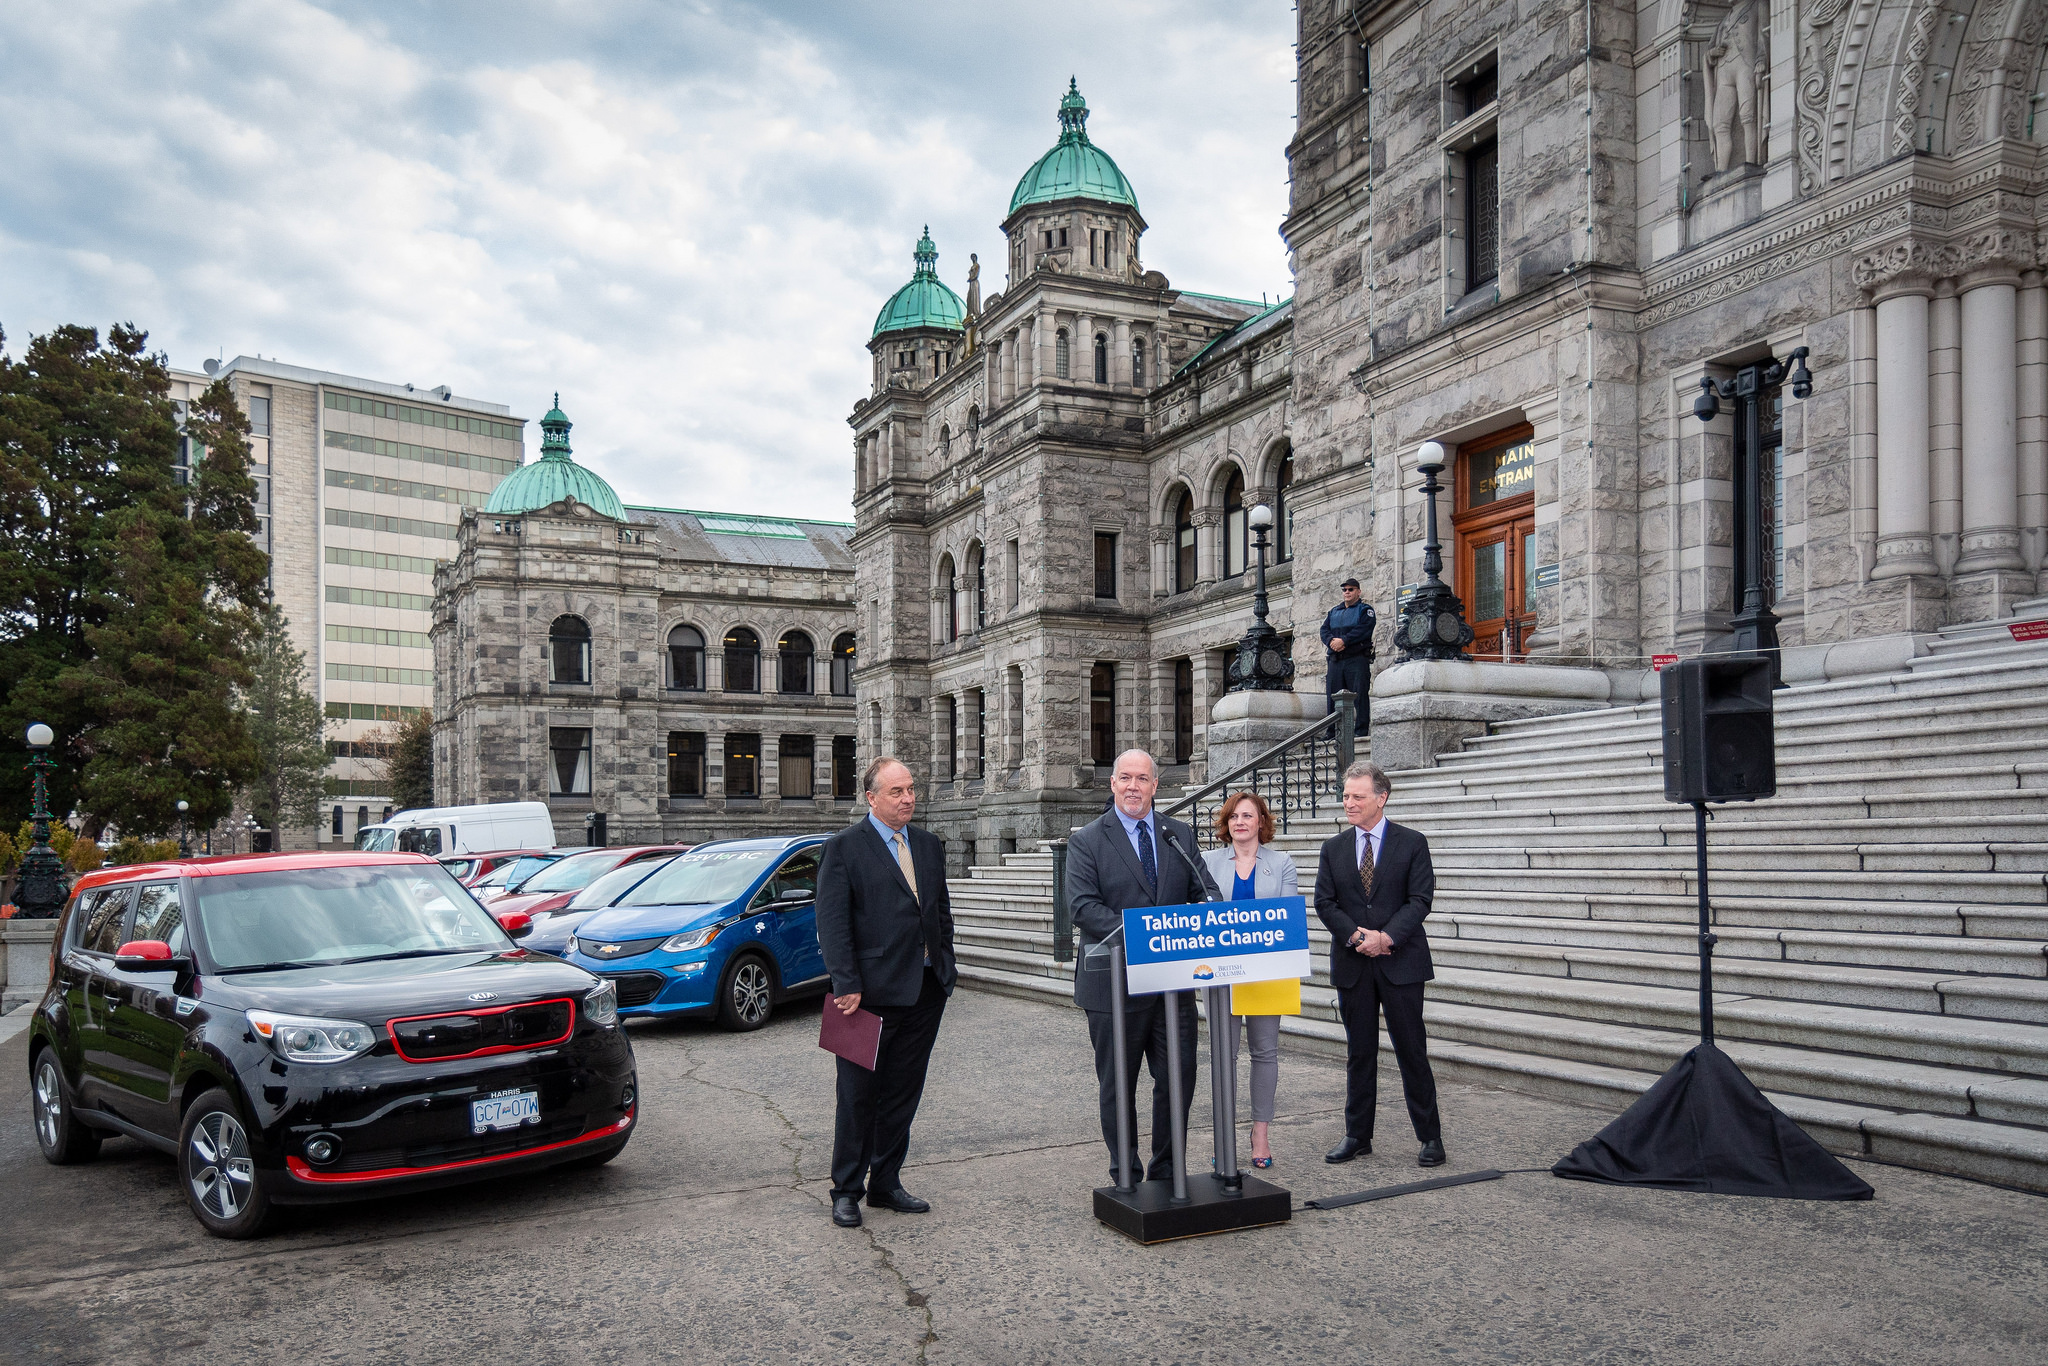 * B.C. is targeting 100 per cent zero-emission vehicle sales by 2040. Photo: Province of B.C.